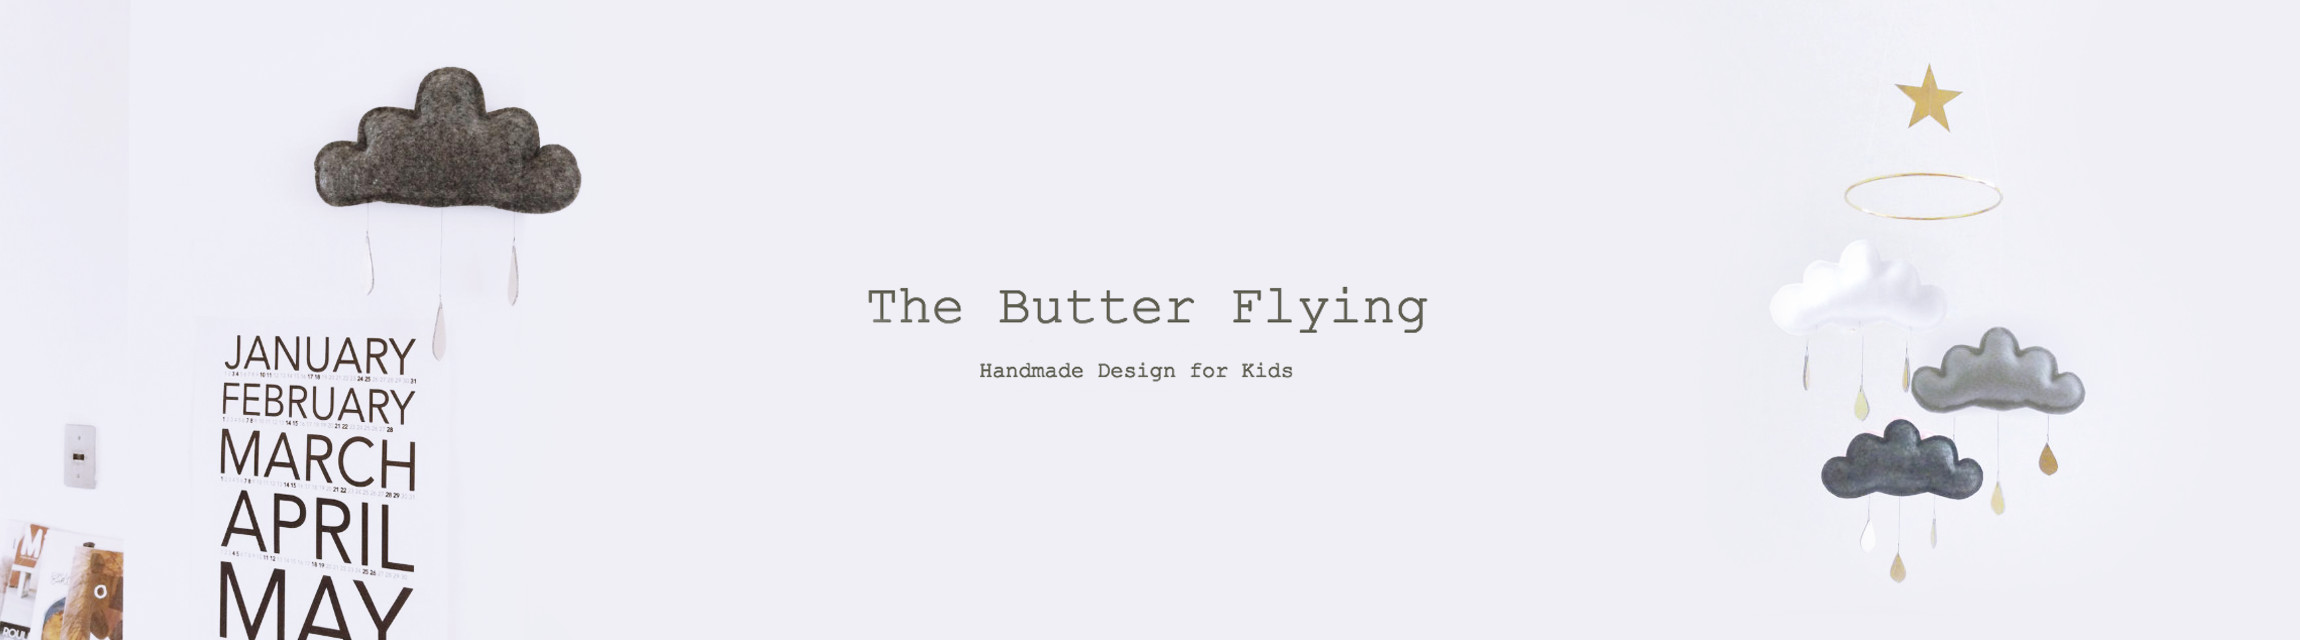 The Butter Flying(ザ バター フライング)